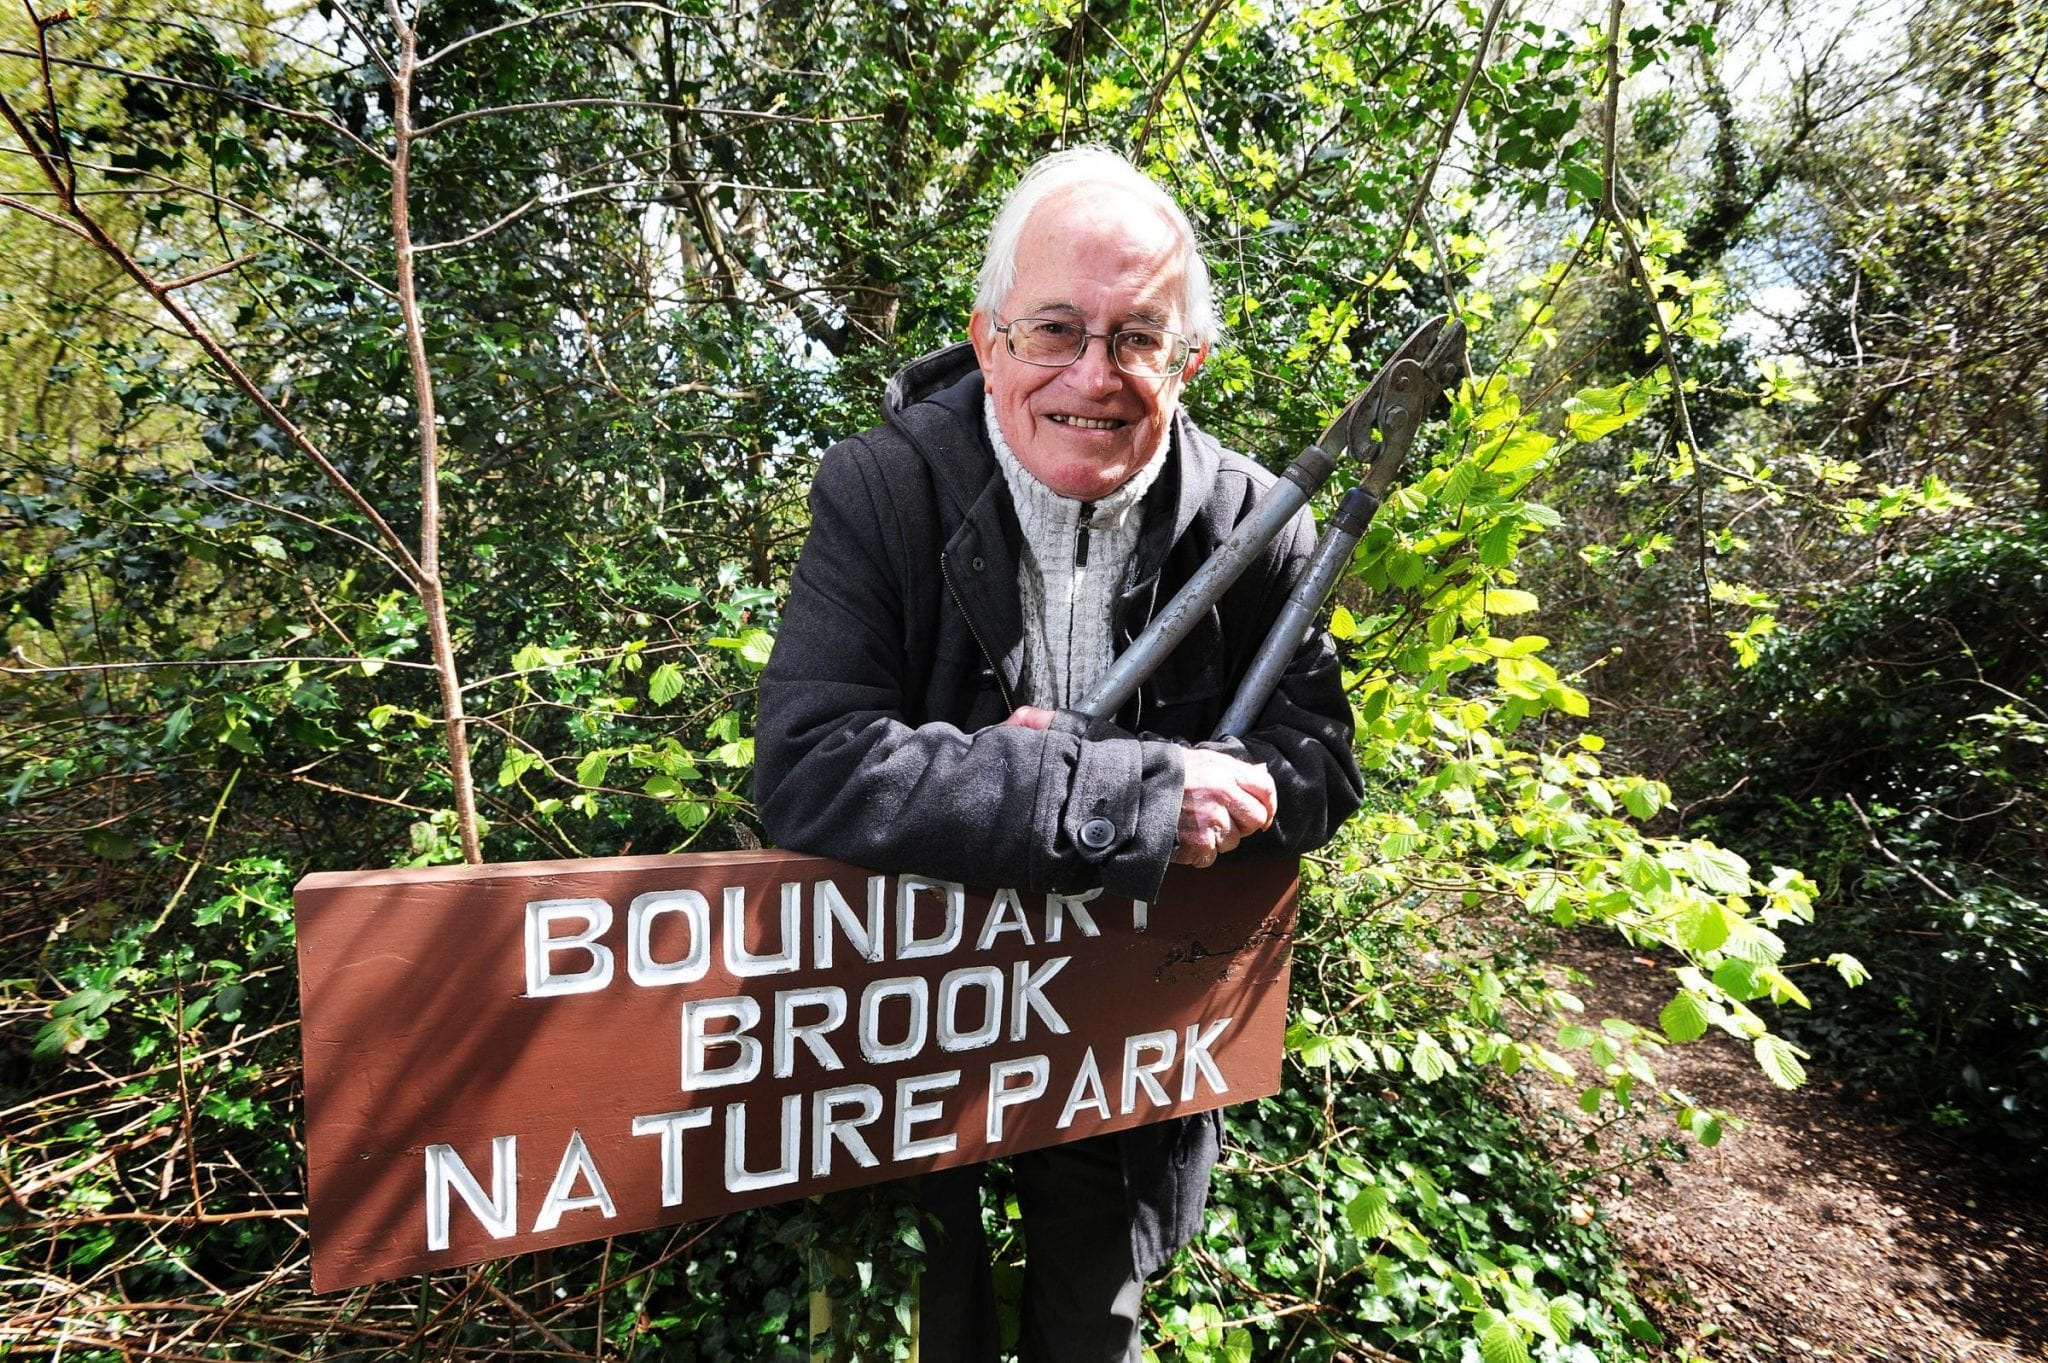 In 1991, Boundary Brook Nature Park wins an OSCA (Oxfordshire special conservation award) in recognition of its contribution to conservation in Oxfordshire